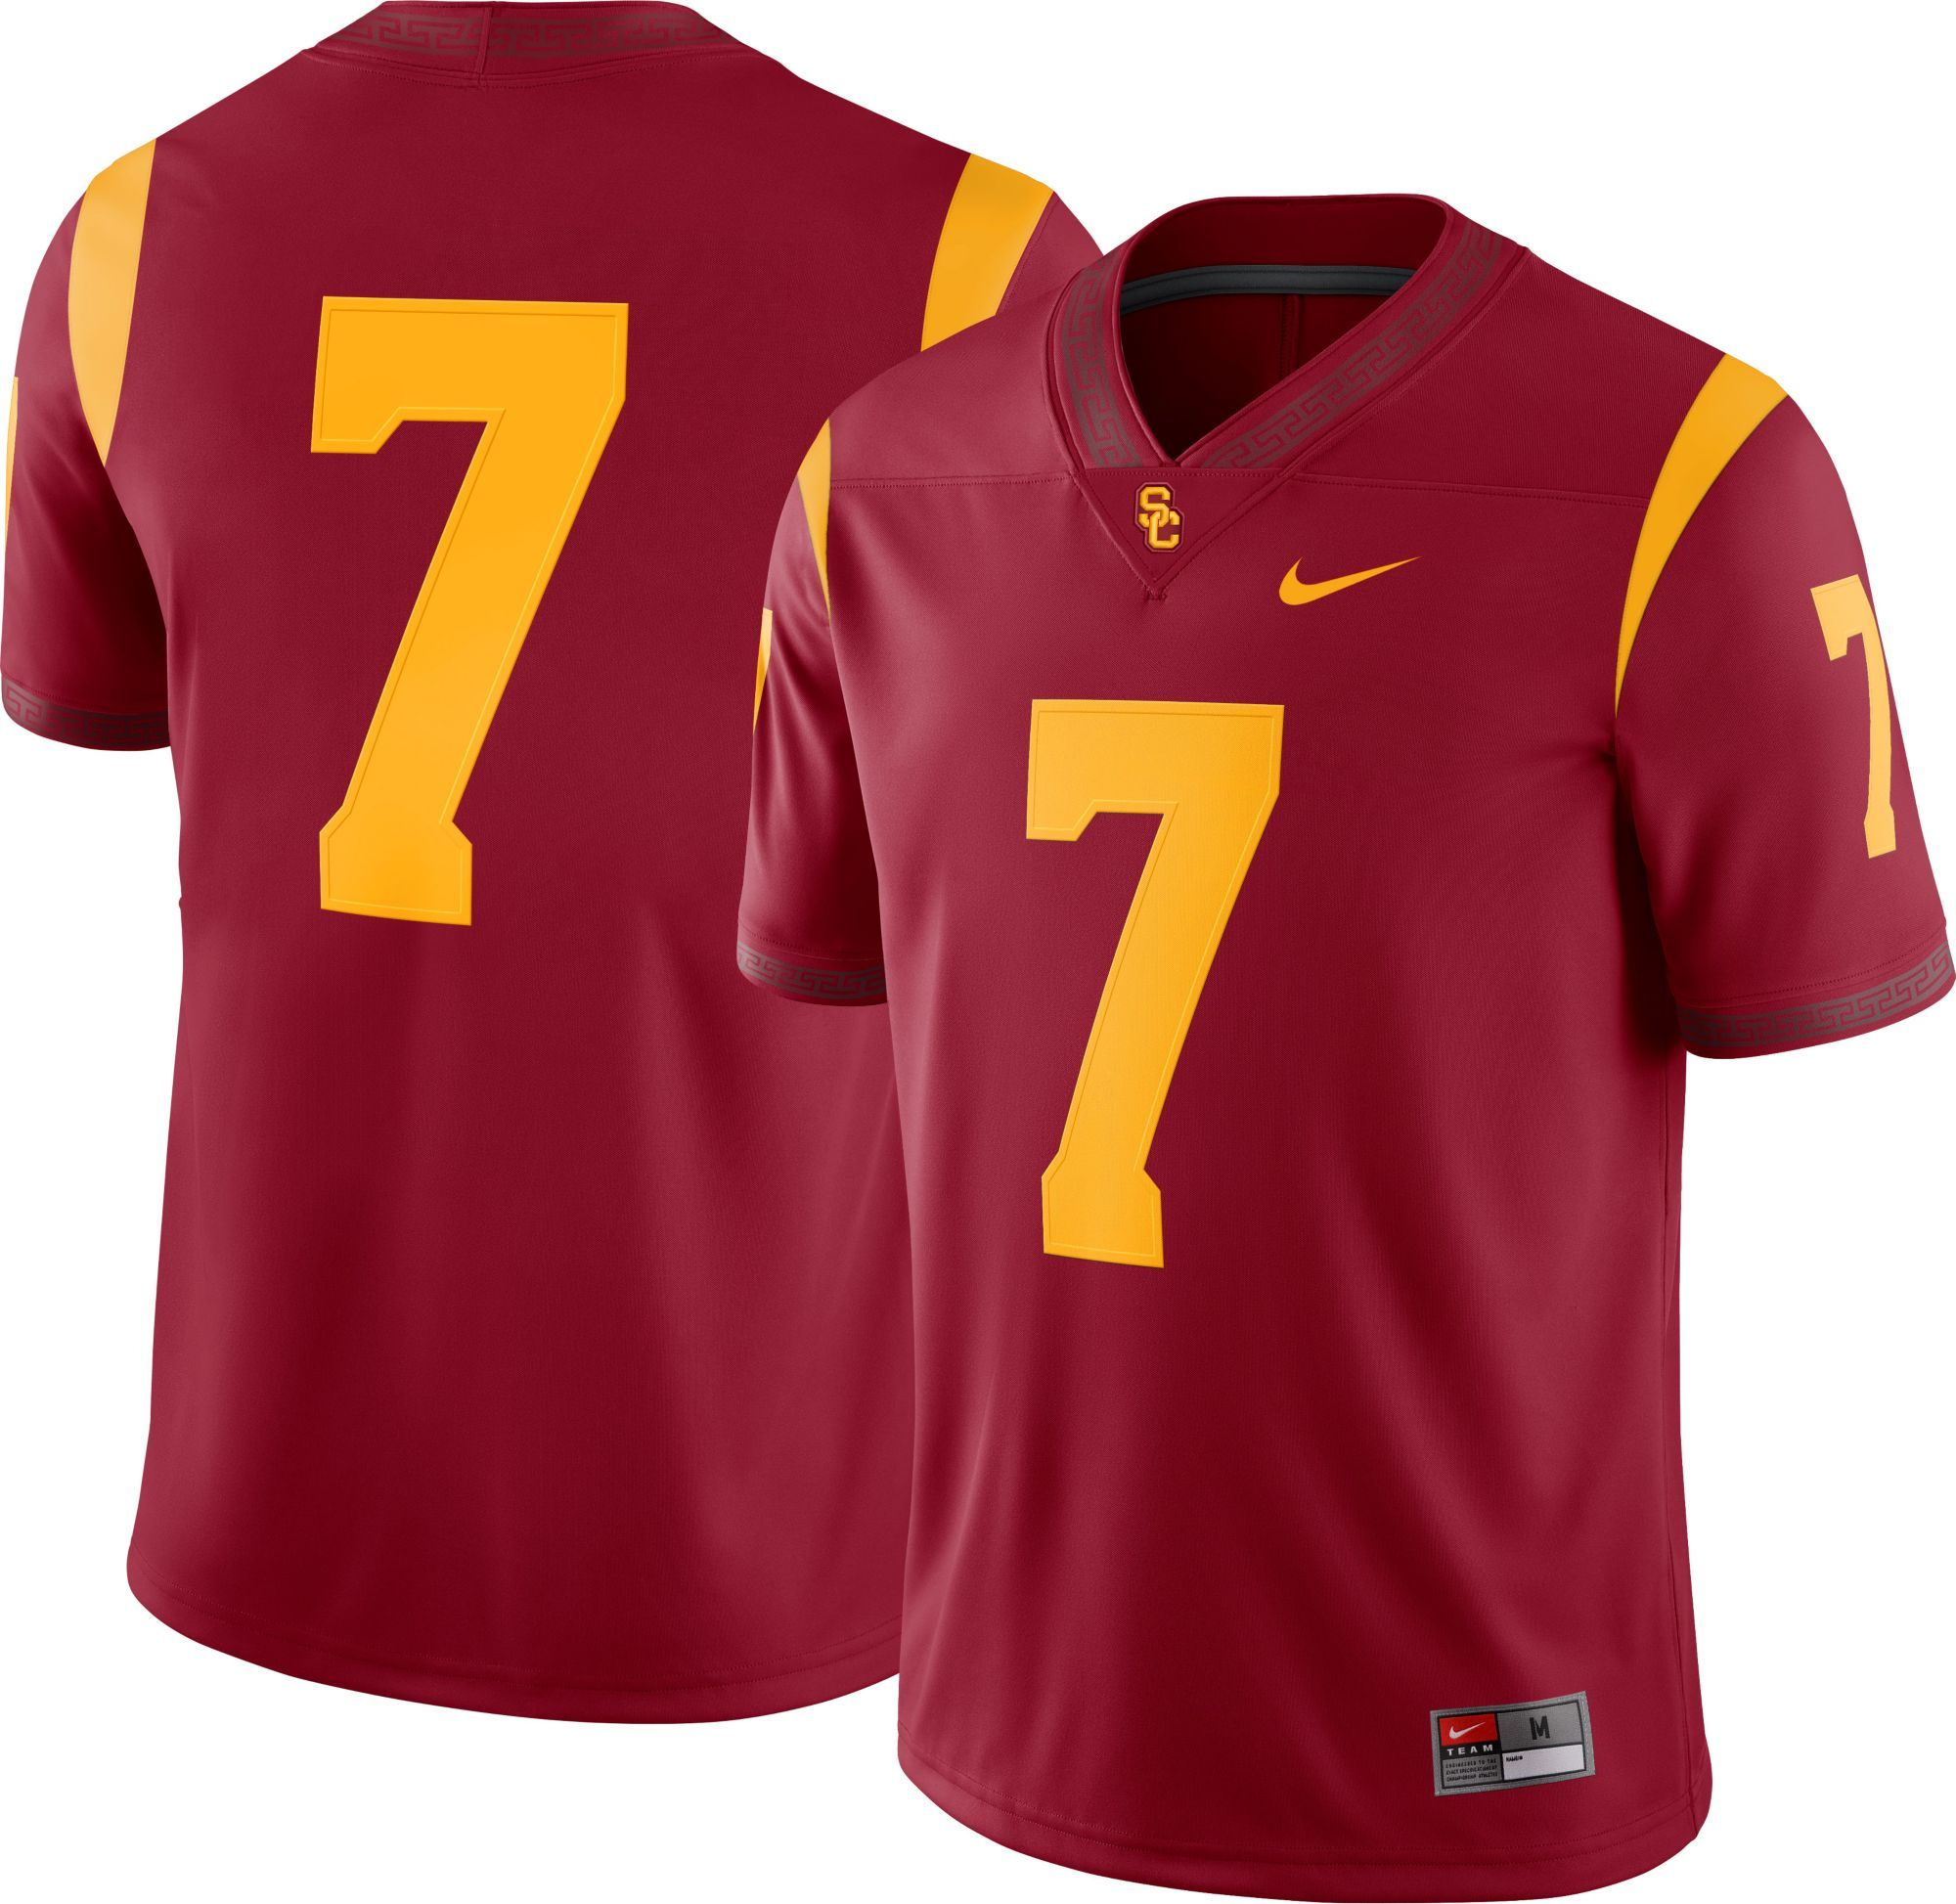 3eba6644fdc Nike Men s USC Trojans  7 Cardinal Game Football Jersey